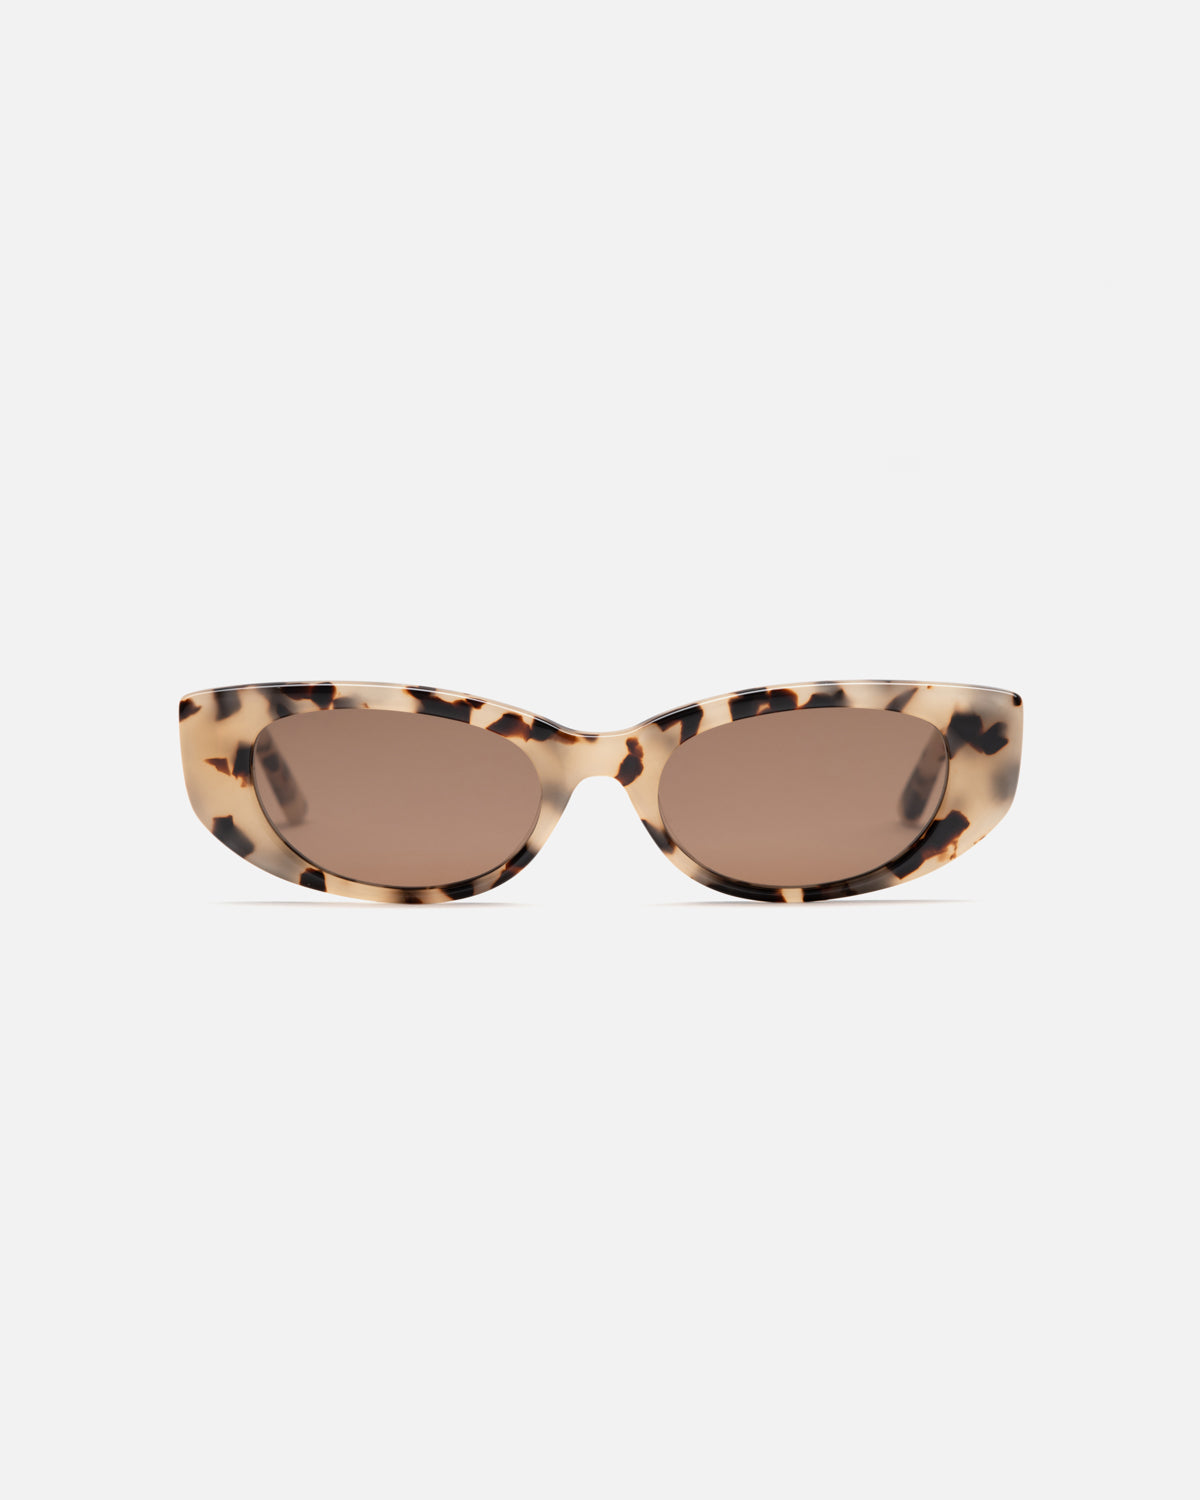 Lu Goldie Lotte semi cat eye Sunglasses in choc tortoise shell acetate with brown lenses, front